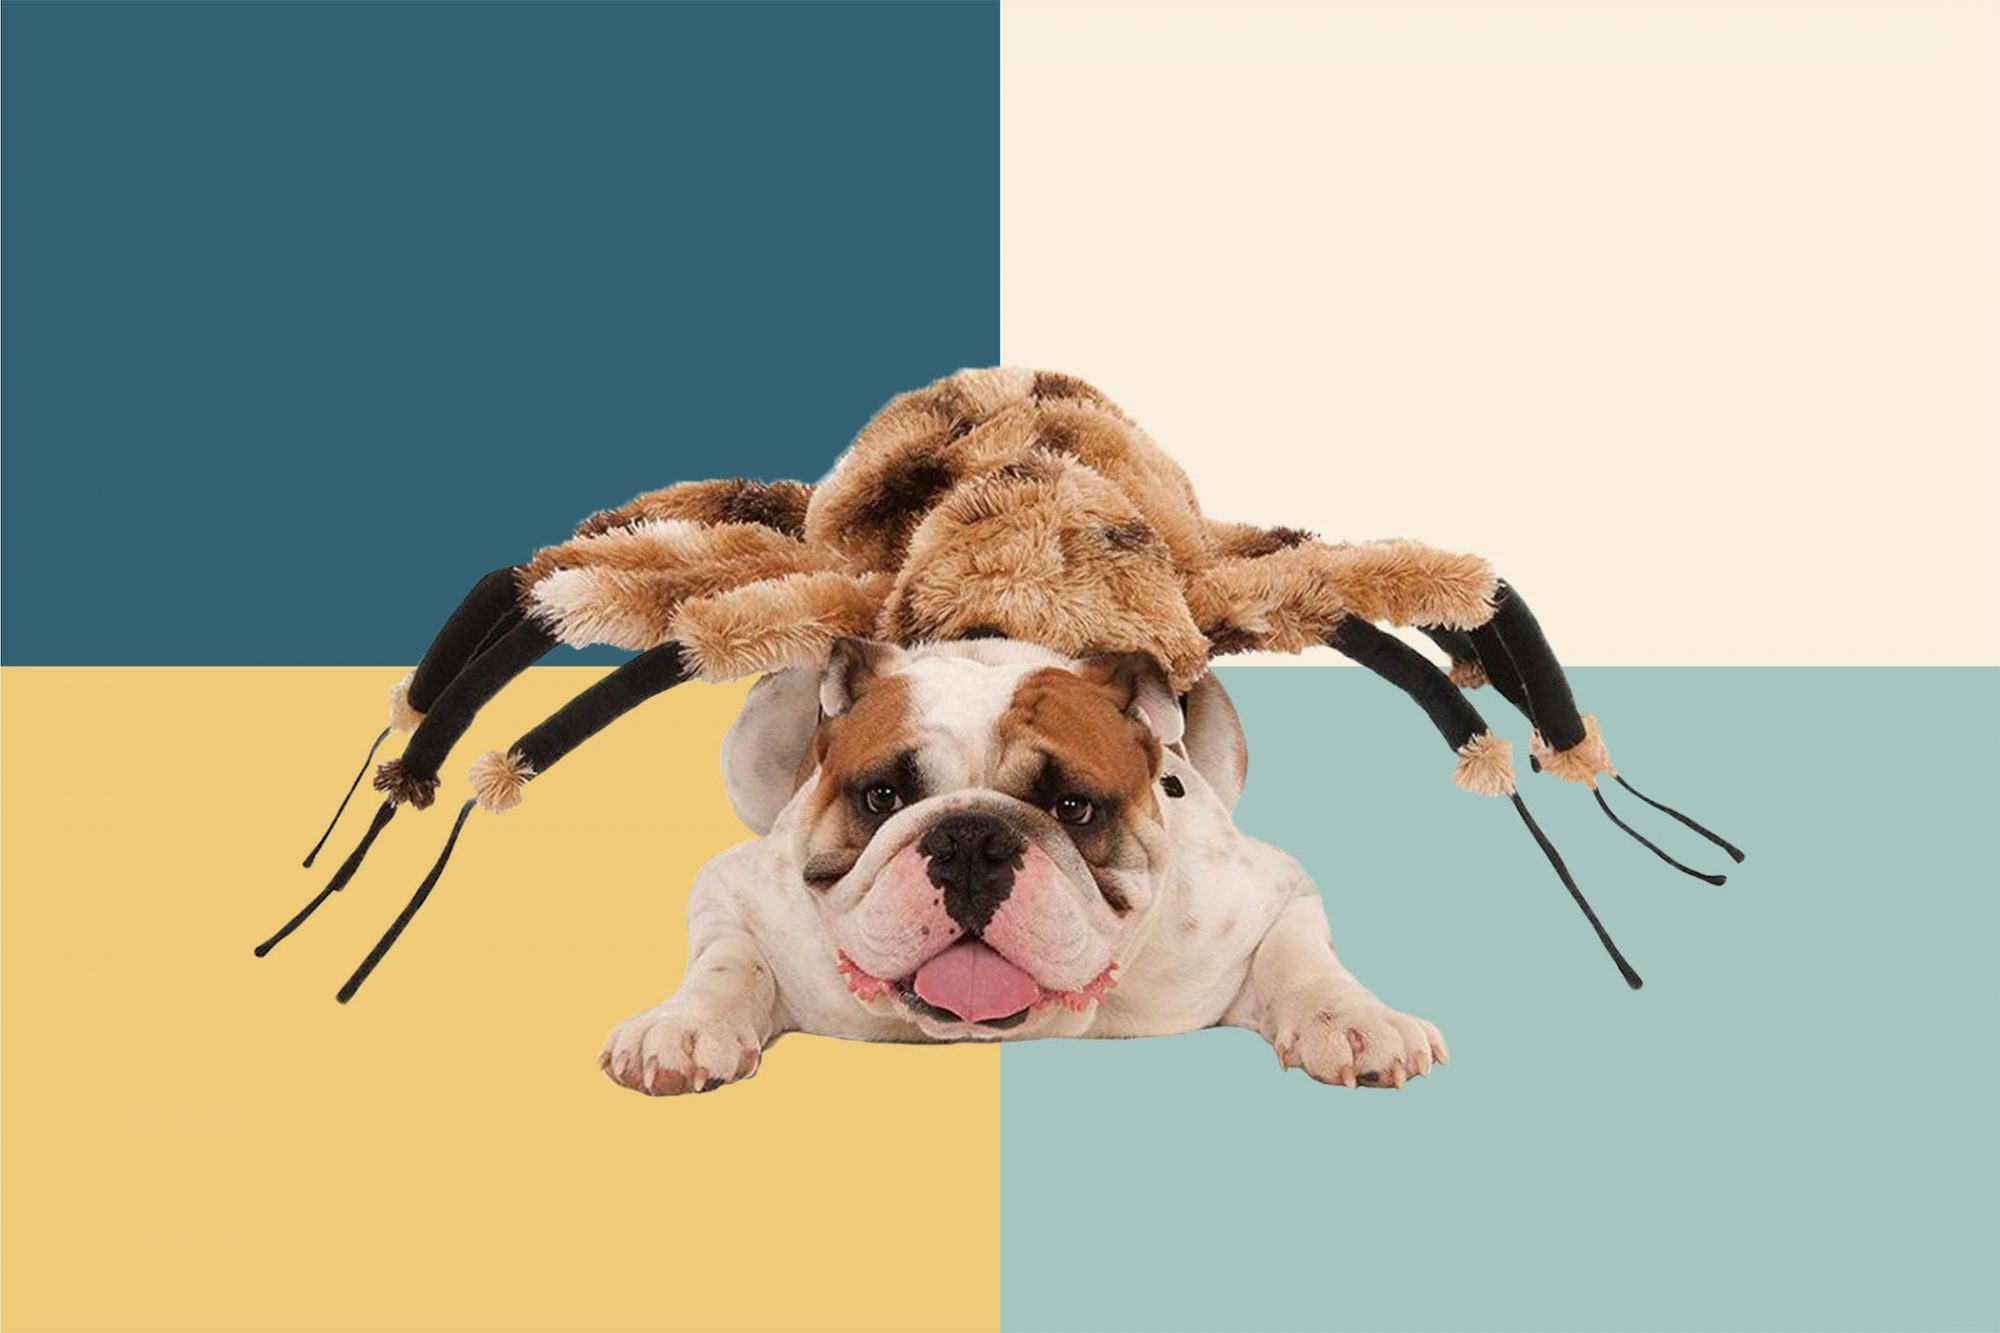 spider costume for dog